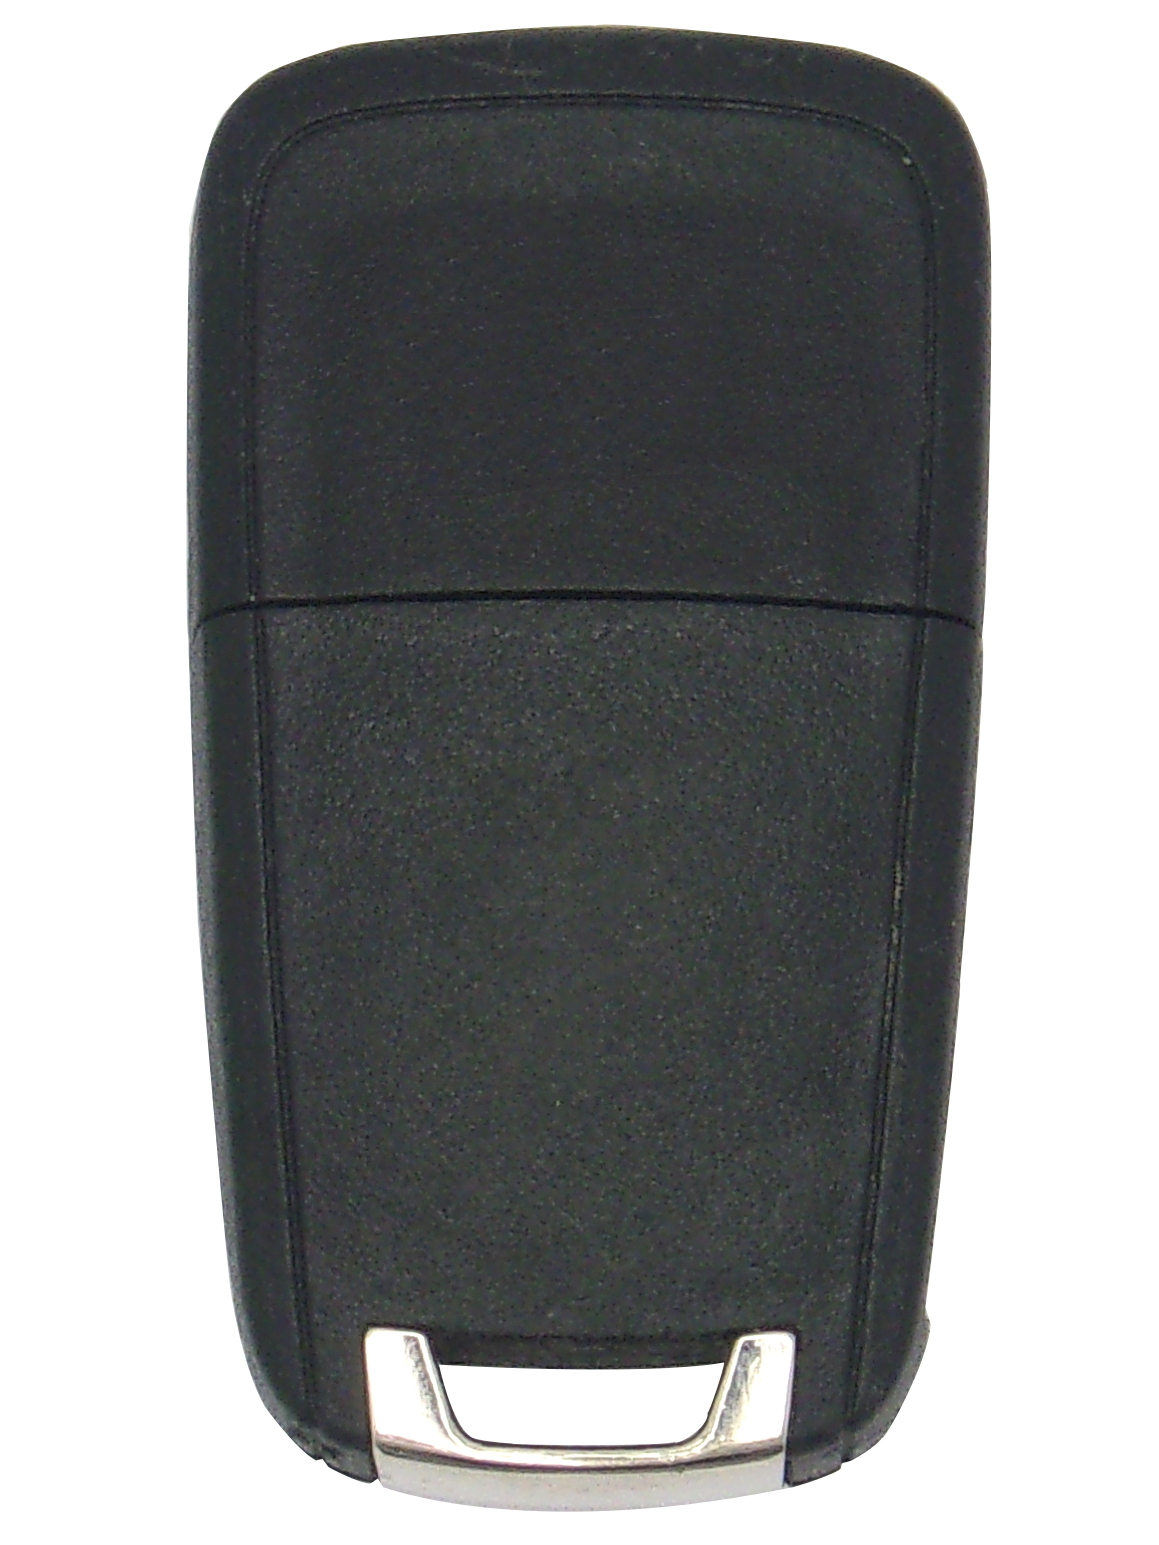 Keyless Entry and Flip Key - 5 Button